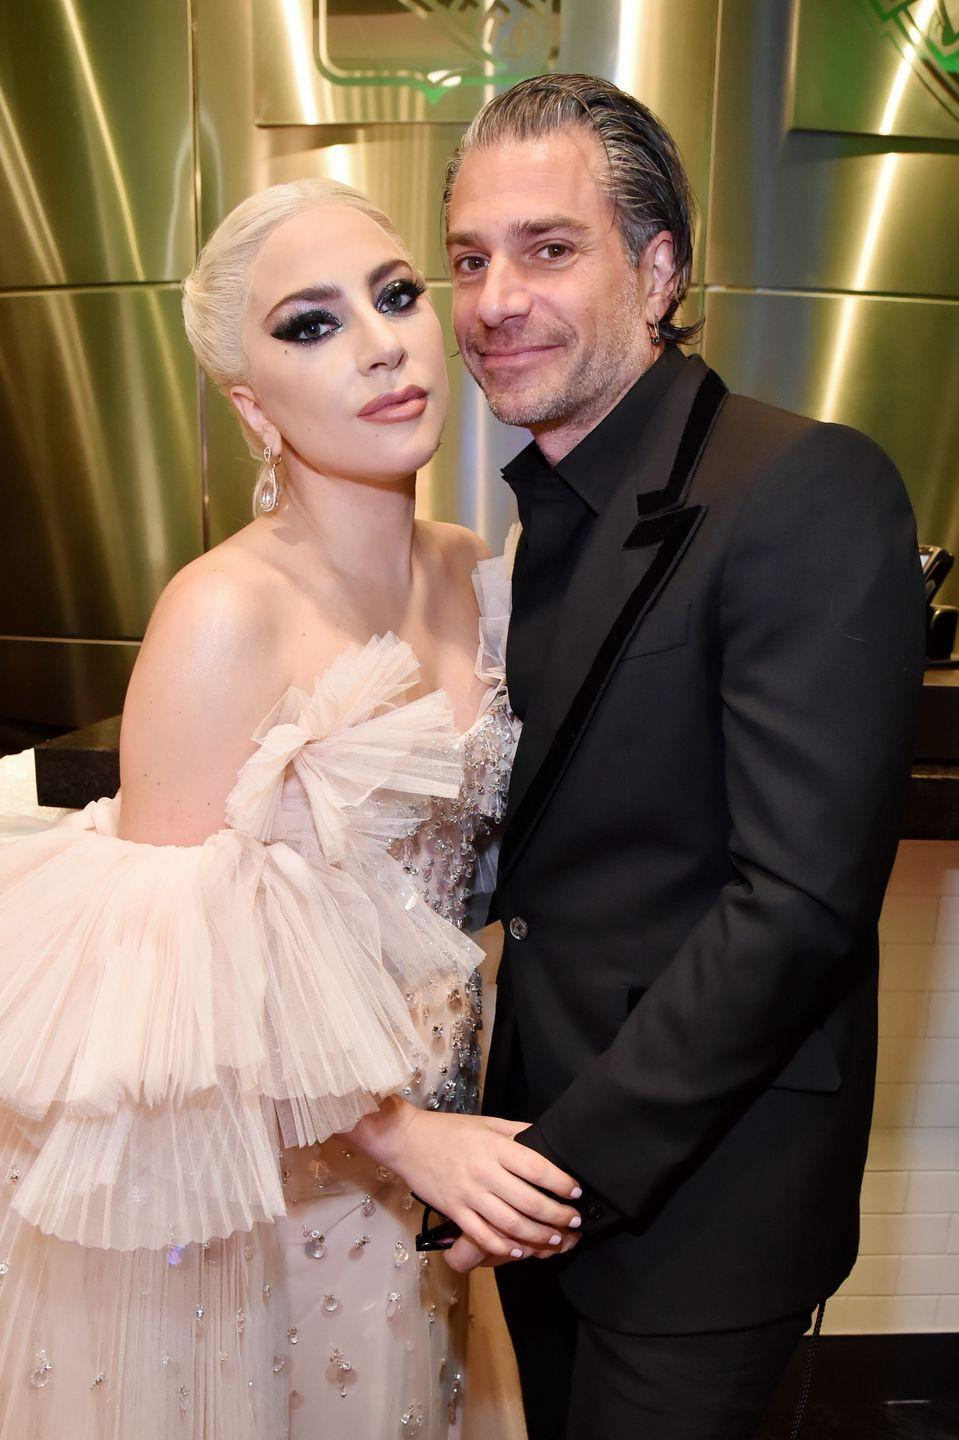 """<p>Gaga and her talent agent fiancé <a href=""""https://people.com/music/lady-gaga-christian-carino-split/"""" rel=""""nofollow noopener"""" target=""""_blank"""" data-ylk=""""slk:ended things in February 2019"""" class=""""link rapid-noclick-resp"""">ended things in February 2019</a>, two years after they were first spotted together at a Kings of Leon concert. The Grammy winner confirmed her engagement to Carino during her <em><a href=""""https://www.elle.com/culture/celebrities/a23833075/lady-gaga-confirms-engagement-to-christian-carino-elle-women-in-hollywood-speech/"""" rel=""""nofollow noopener"""" target=""""_blank"""" data-ylk=""""slk:ELLE"""" class=""""link rapid-noclick-resp"""">ELLE </a></em><a href=""""https://www.elle.com/culture/celebrities/a23833075/lady-gaga-confirms-engagement-to-christian-carino-elle-women-in-hollywood-speech/"""" rel=""""nofollow noopener"""" target=""""_blank"""" data-ylk=""""slk:Women in Hollywood acceptance speech"""" class=""""link rapid-noclick-resp"""">Women in Hollywood acceptance speech</a> the October prior to their split. She's since moved on <a href=""""https://www.elle.com/culture/celebrities/a30750971/who-is-michael-polansky-lady-gaga-boyfriend/"""" rel=""""nofollow noopener"""" target=""""_blank"""" data-ylk=""""slk:with investor Michael Polansky"""" class=""""link rapid-noclick-resp"""">with investor Michael Polansky</a>.<br></p>"""